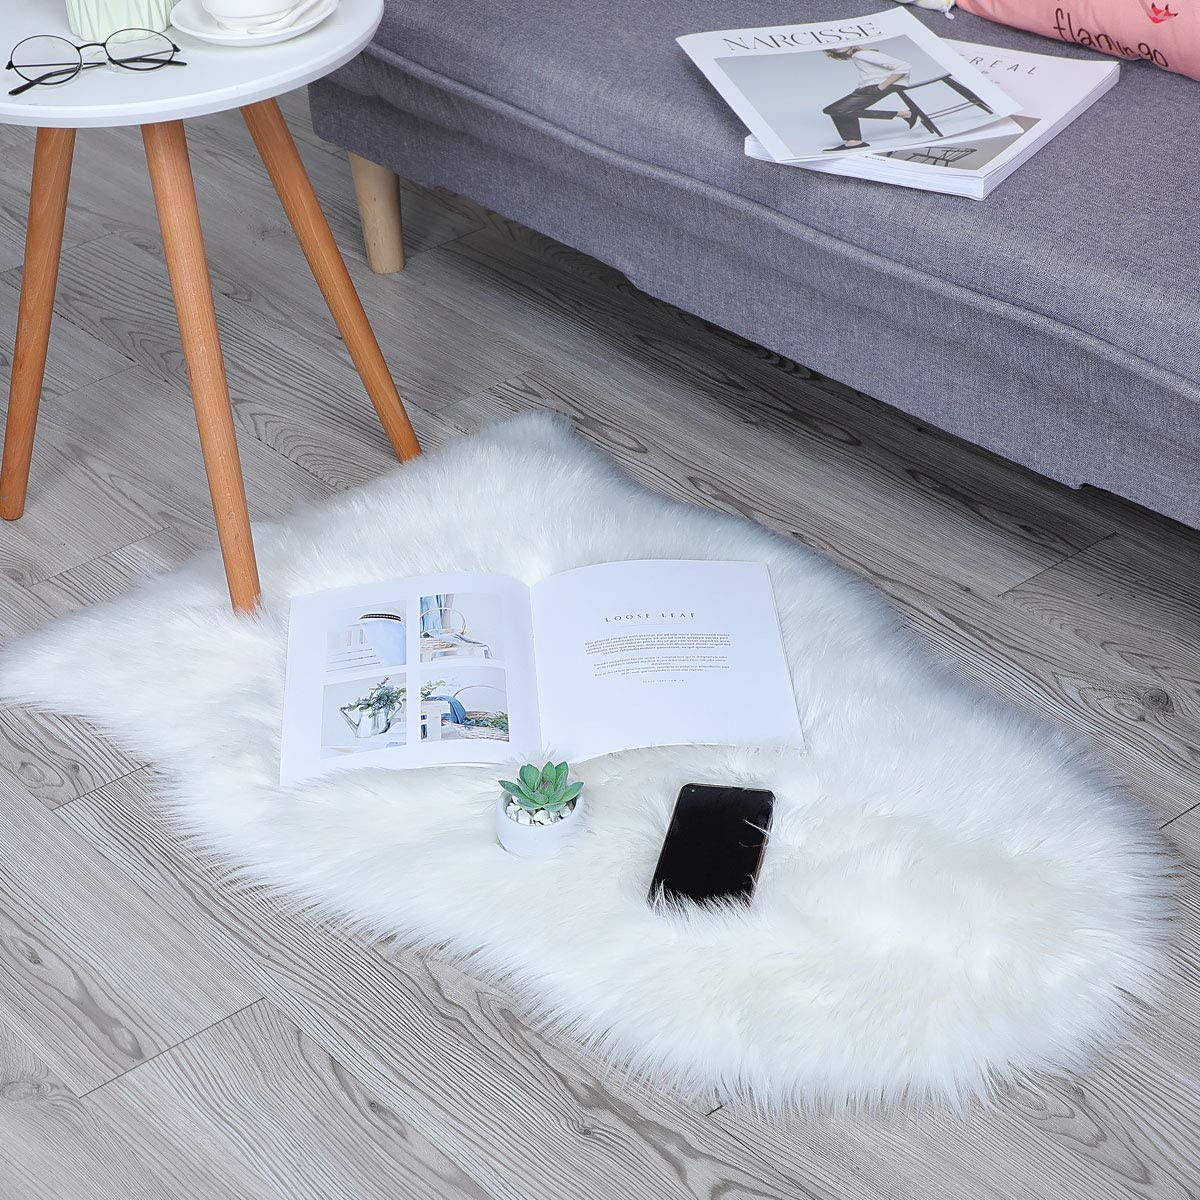 Faux Fur Sheepskin Style Rug, Faux Fleece Chair Cover Seat Pad Soft Fluffy  Shaggy Area Rugs for Bedroom Sofa Floor (60x90cm, White)   Walmart Canada